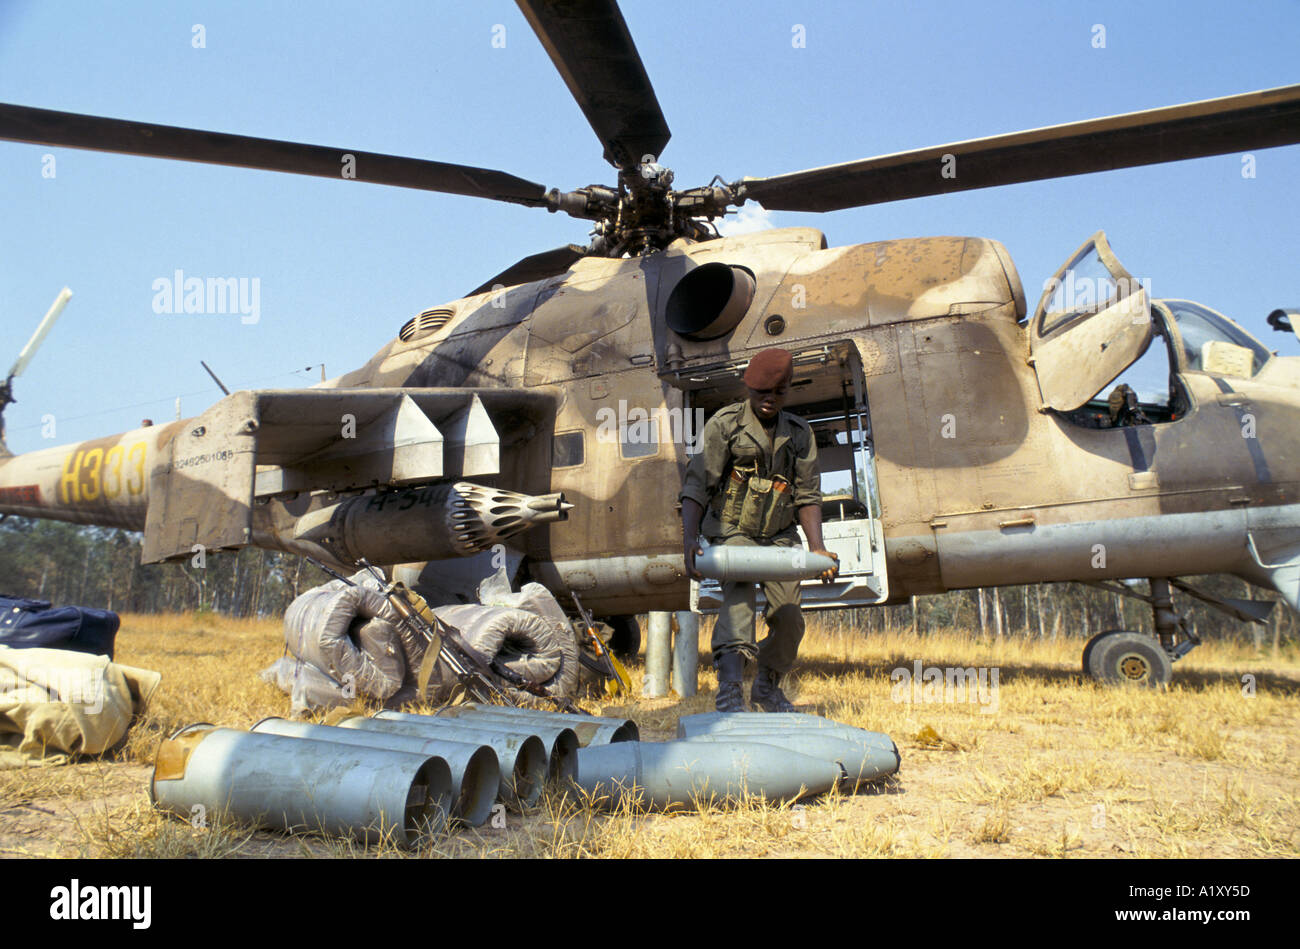 http://c8.alamy.com/comp/A1XY5D/angola-civil-war-aug-1993-soviet-made-helicopter-loaded-with-government-A1XY5D.jpg